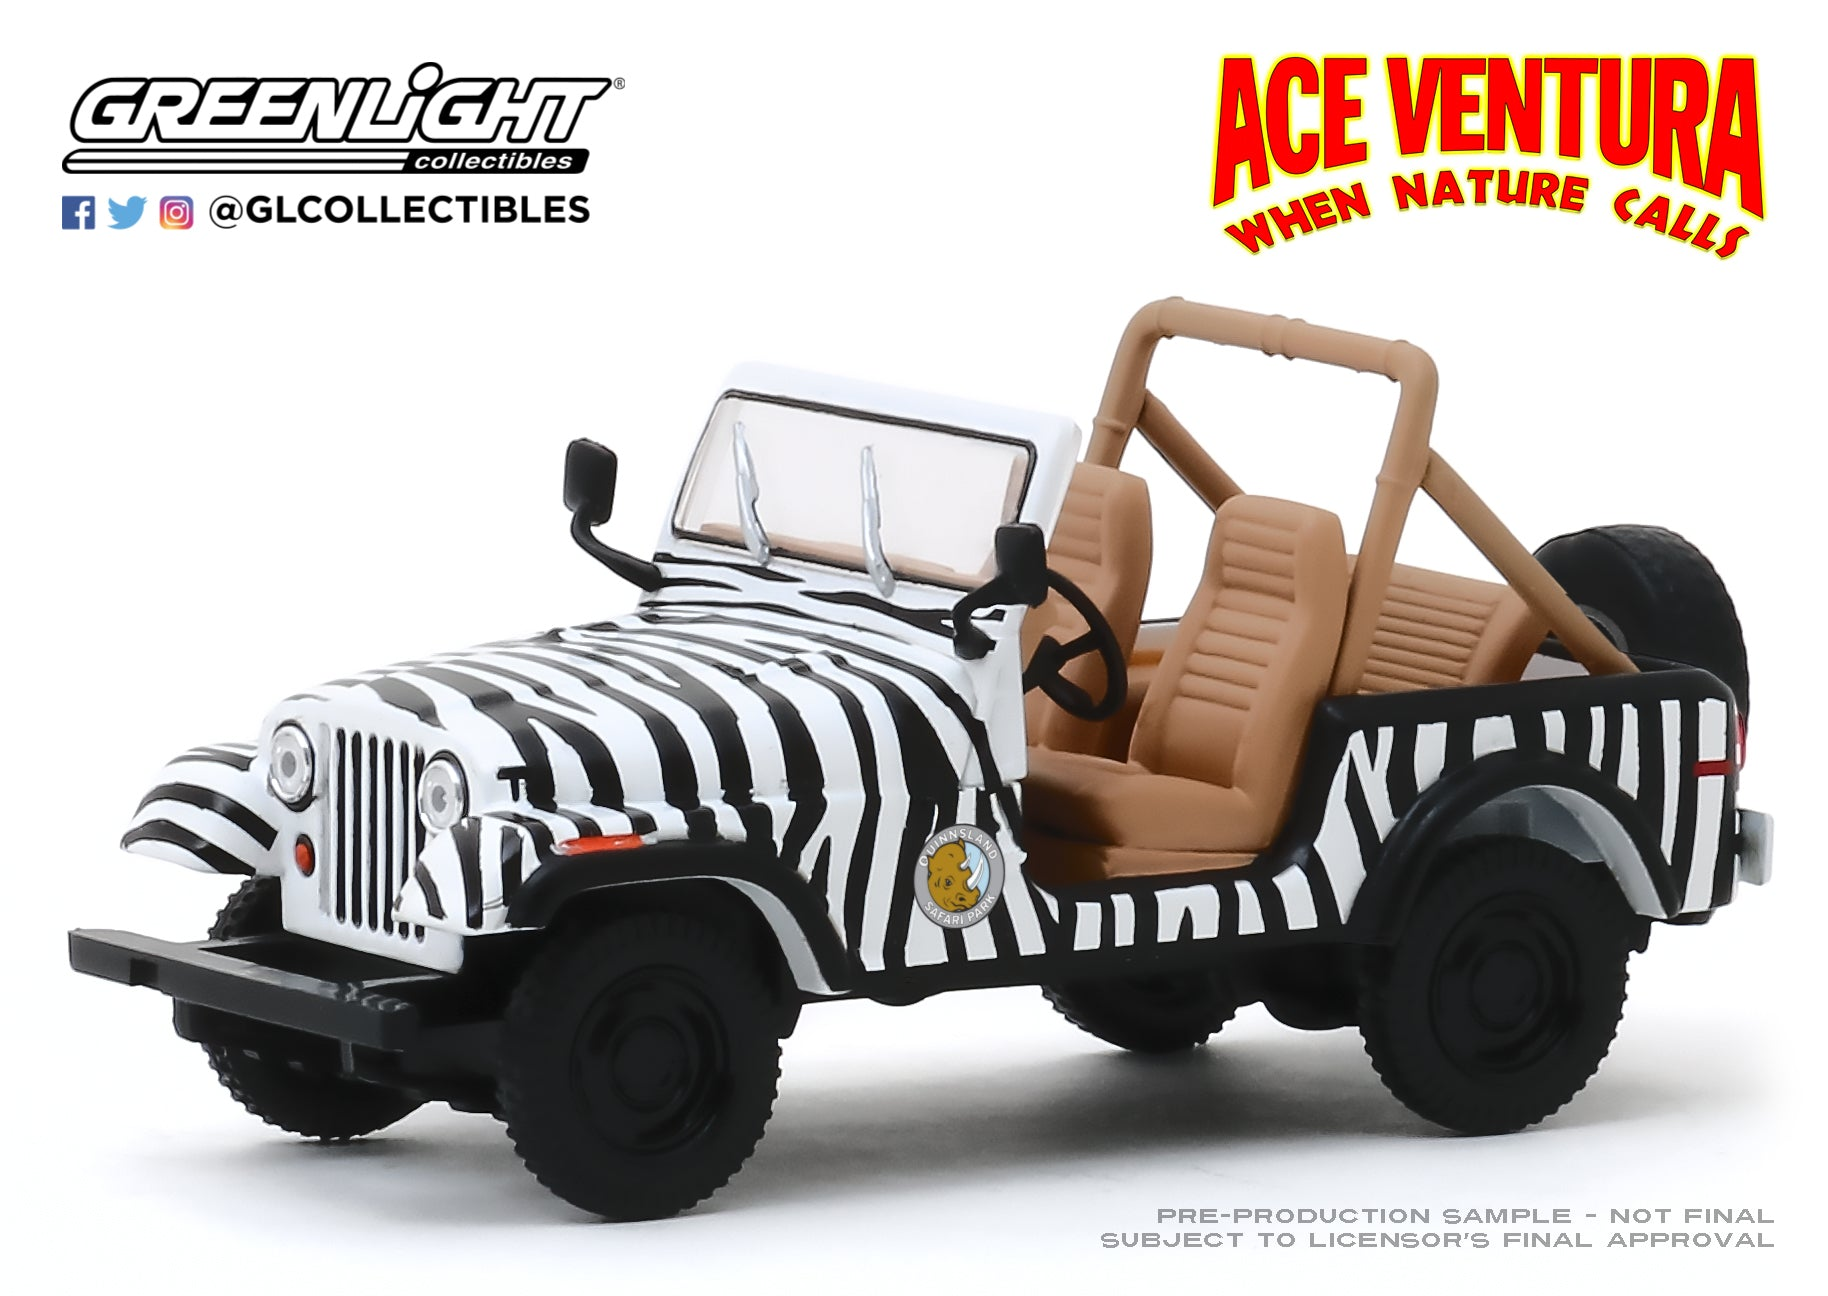 GreenLight 1:43 Ace Ventura: When Nature Calls (1995) - 1976 Jeep CJ-7 86574